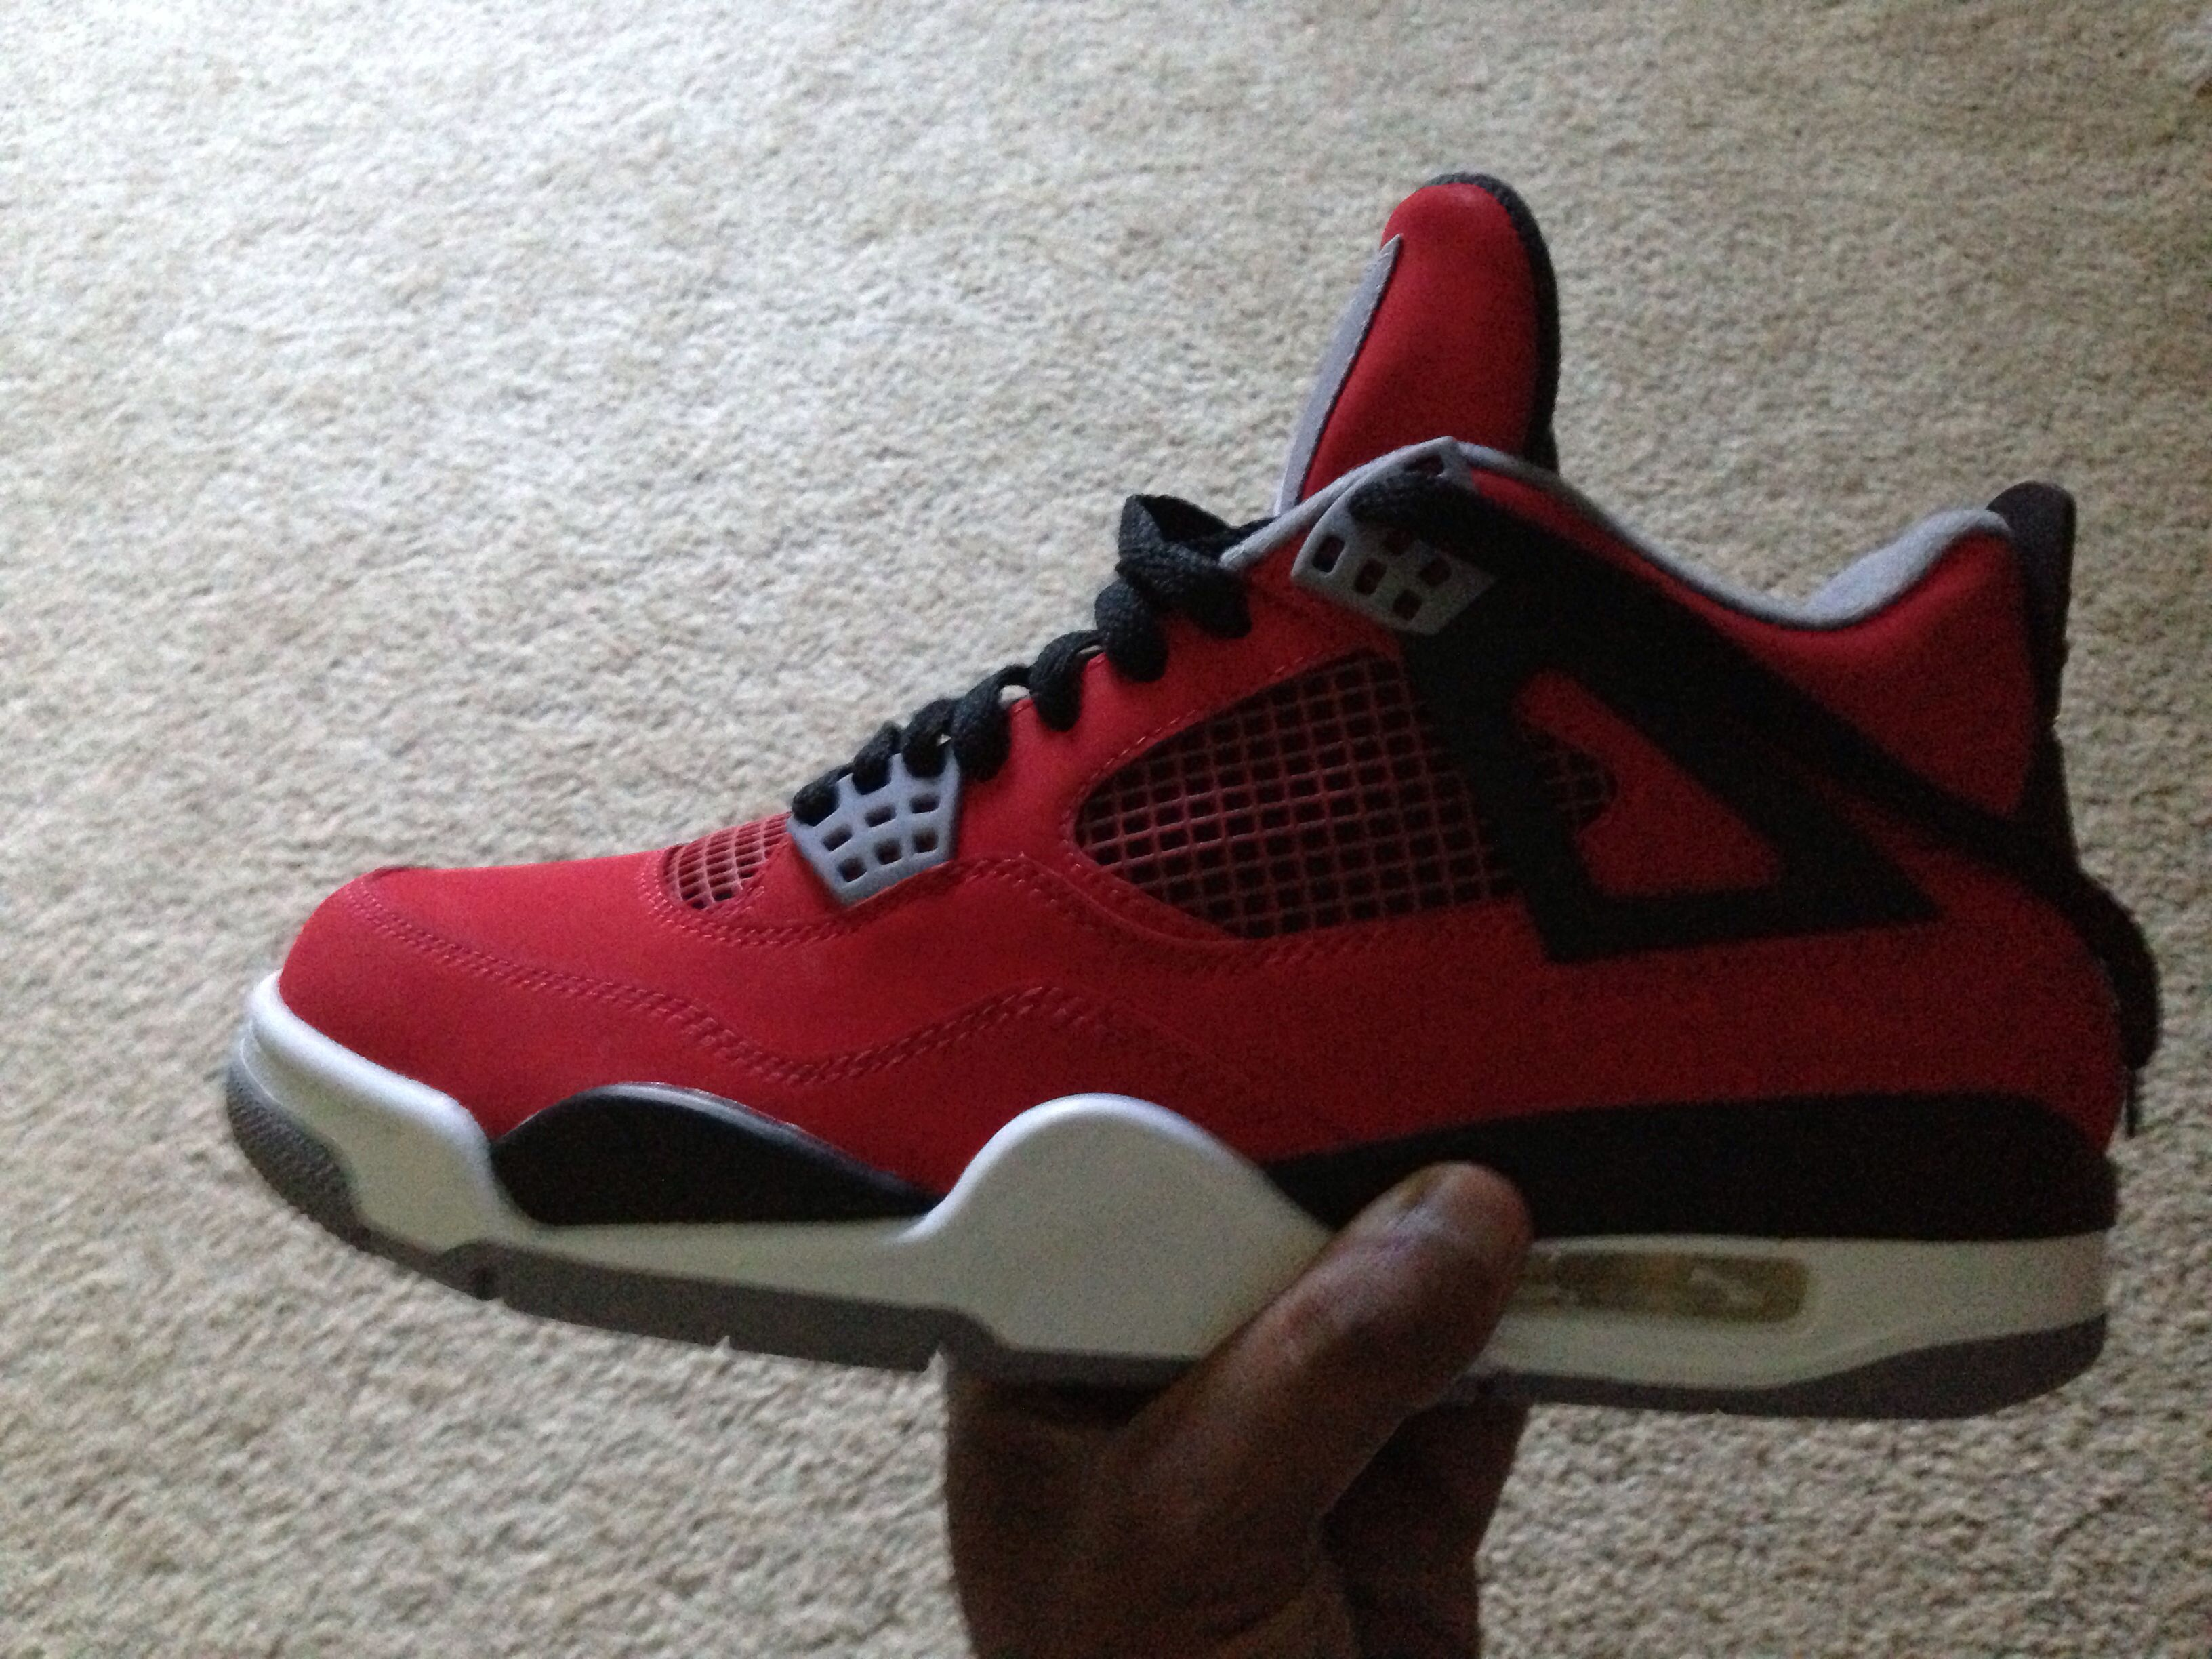 5ce1a7f216fb These are one of the nicest colorways for aj4